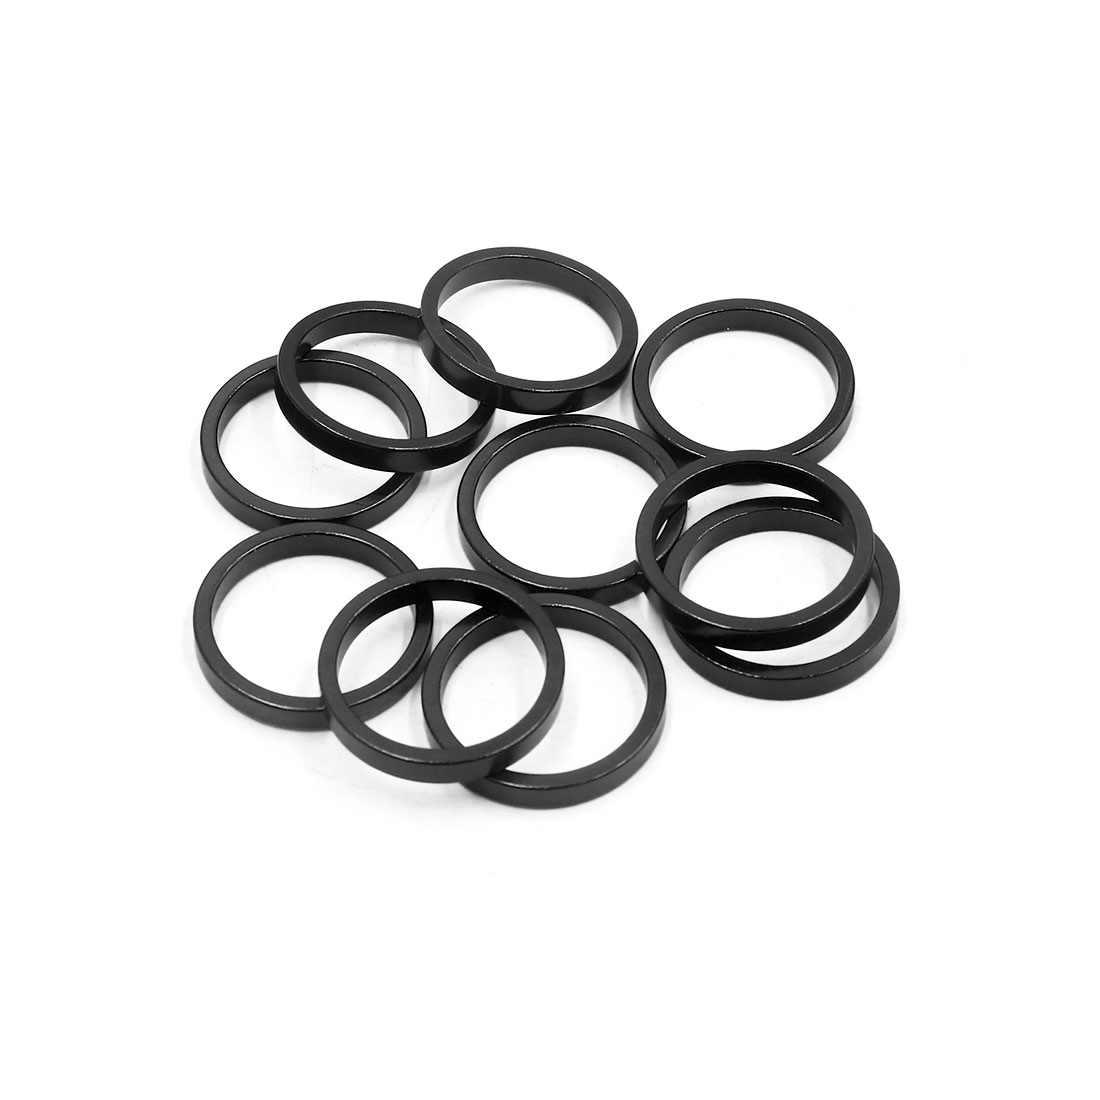 10Pcs Black Aluminum Alloy MTB Bike Bicycle Spacer Fork Stem Washer 28.6 x 5mm